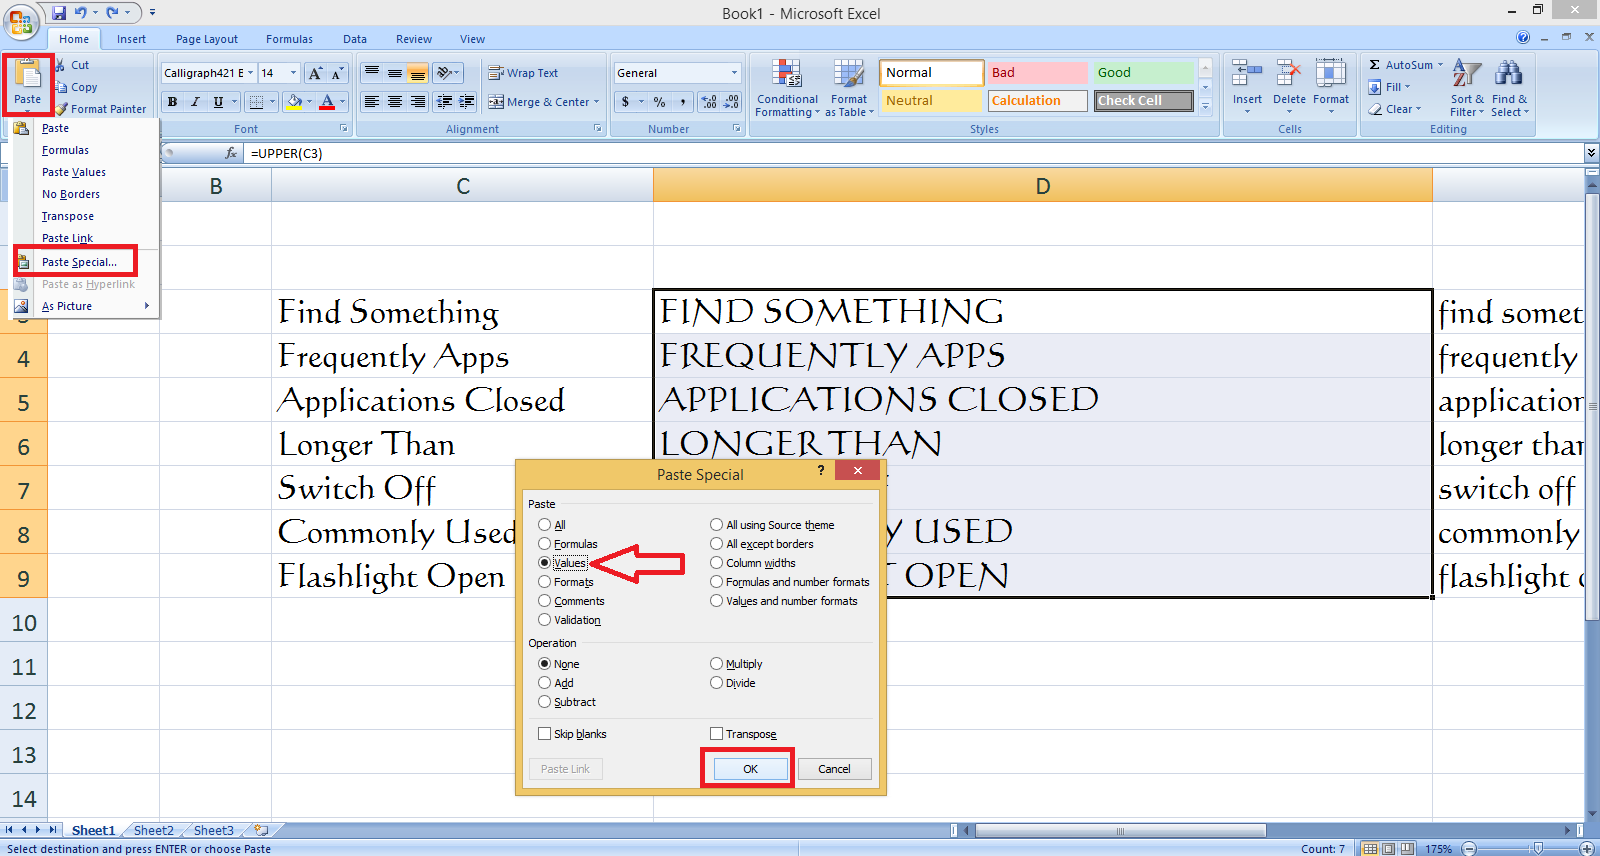 How to Change Small letter to Capital letter in MS Excel (Upper Case/Lower Case)